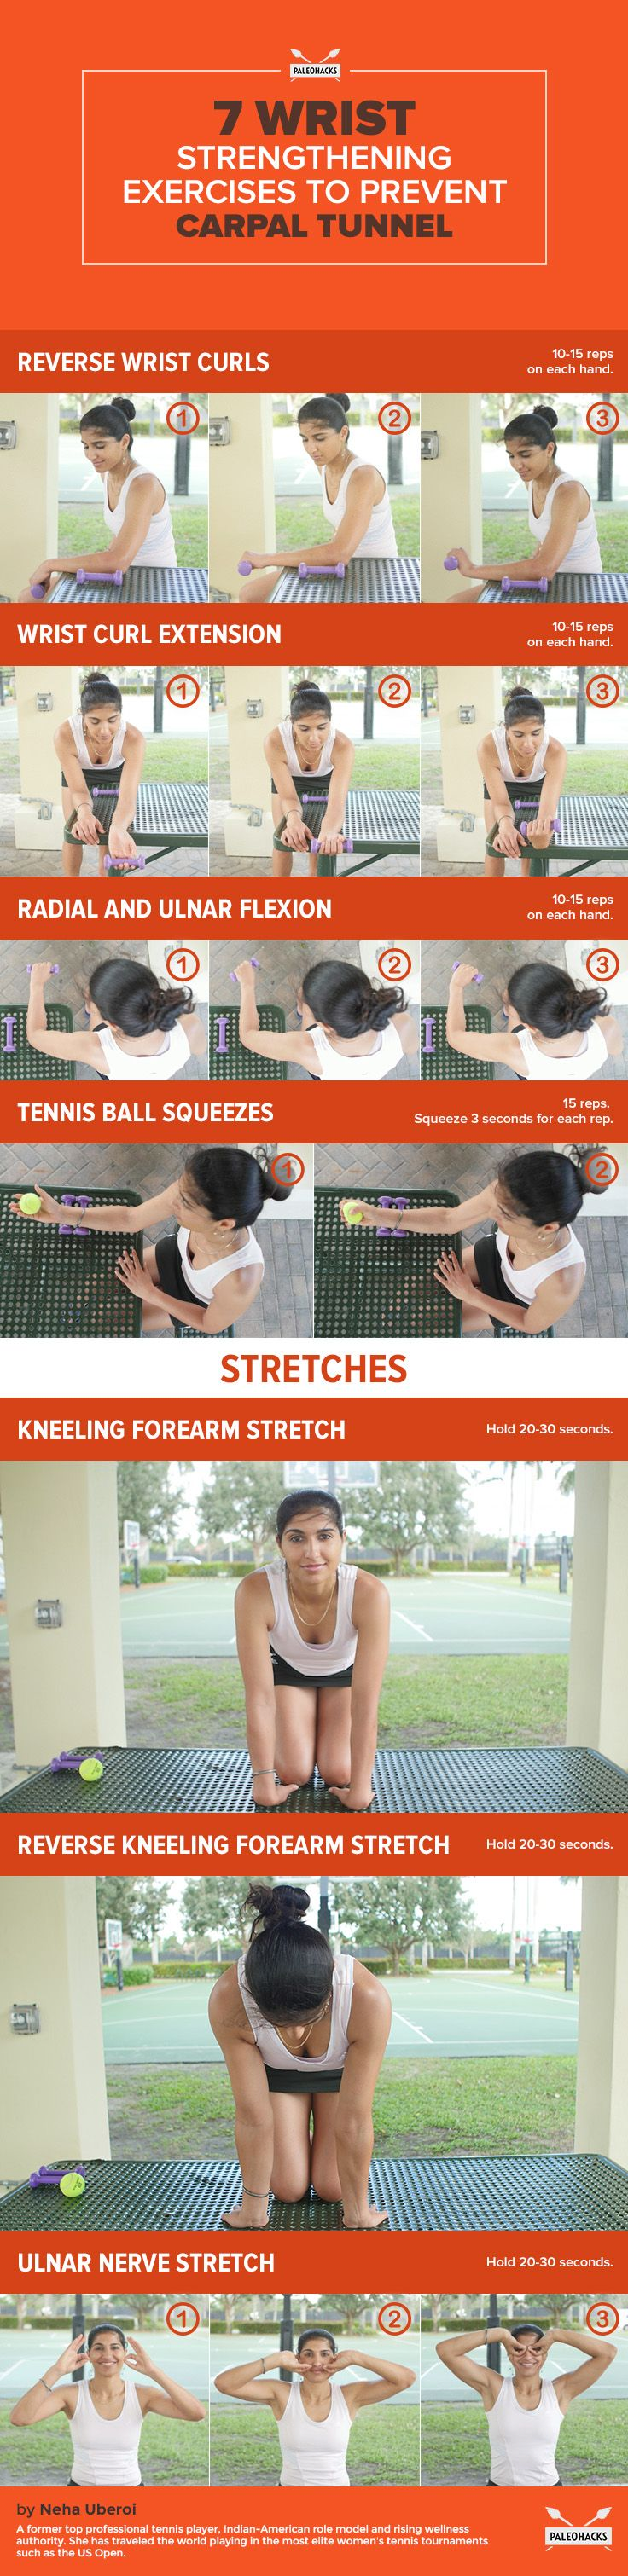 7 wrist exercises to prevent carpal tunnel easy yoga